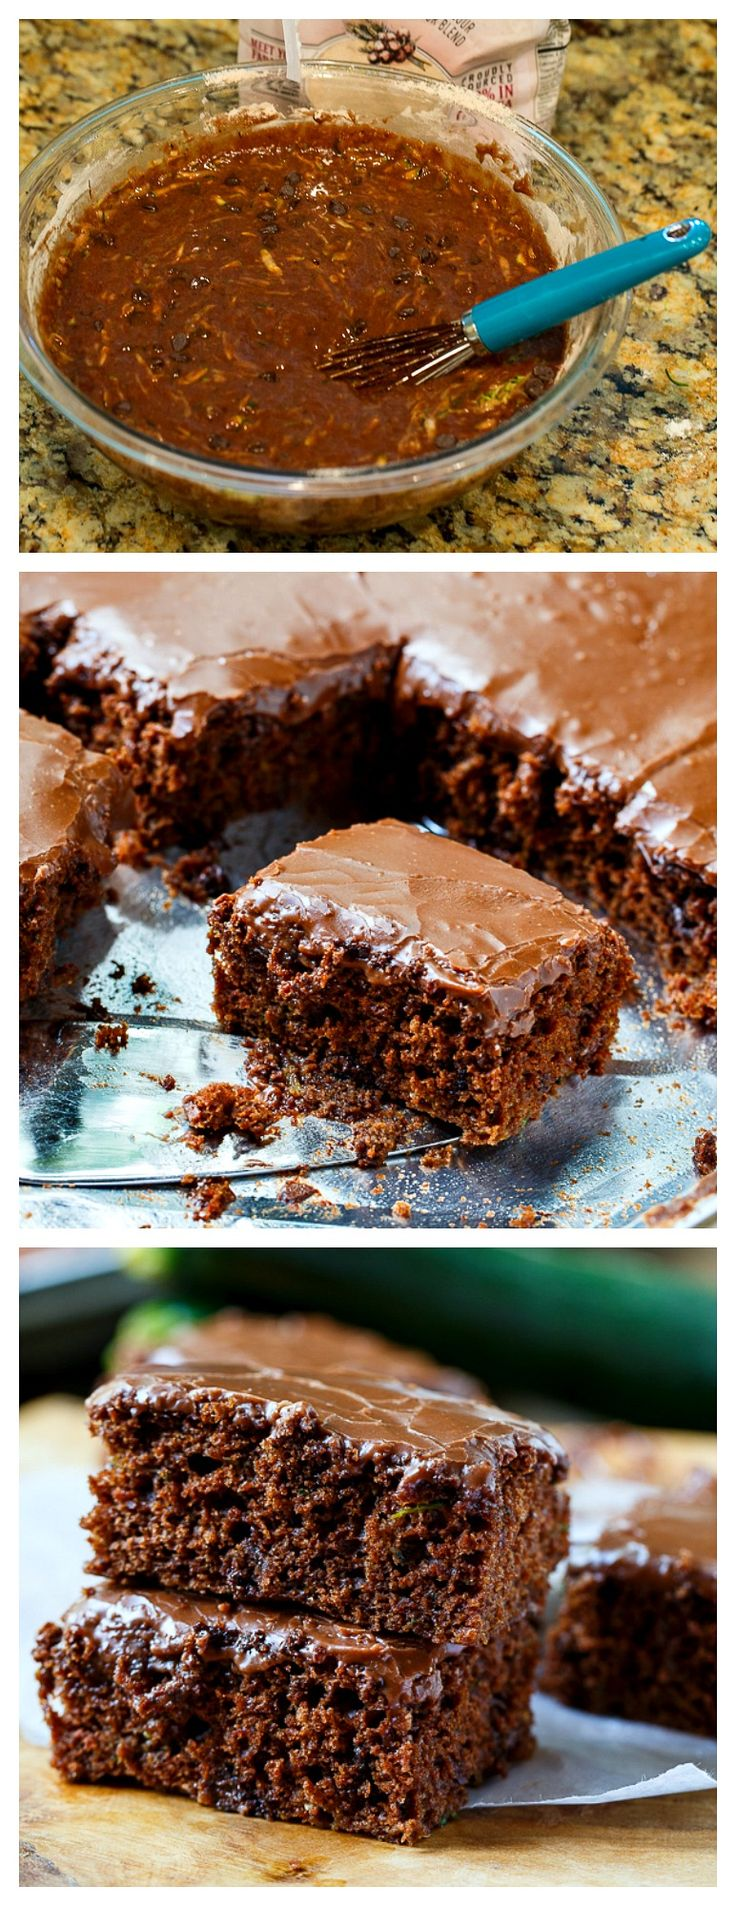 Chocolate and shoes Zucchini Chocolate flat Zucchini for basketball Recipe best Sheet   Cake Cakes Zucchini feet Sheet   Cakes